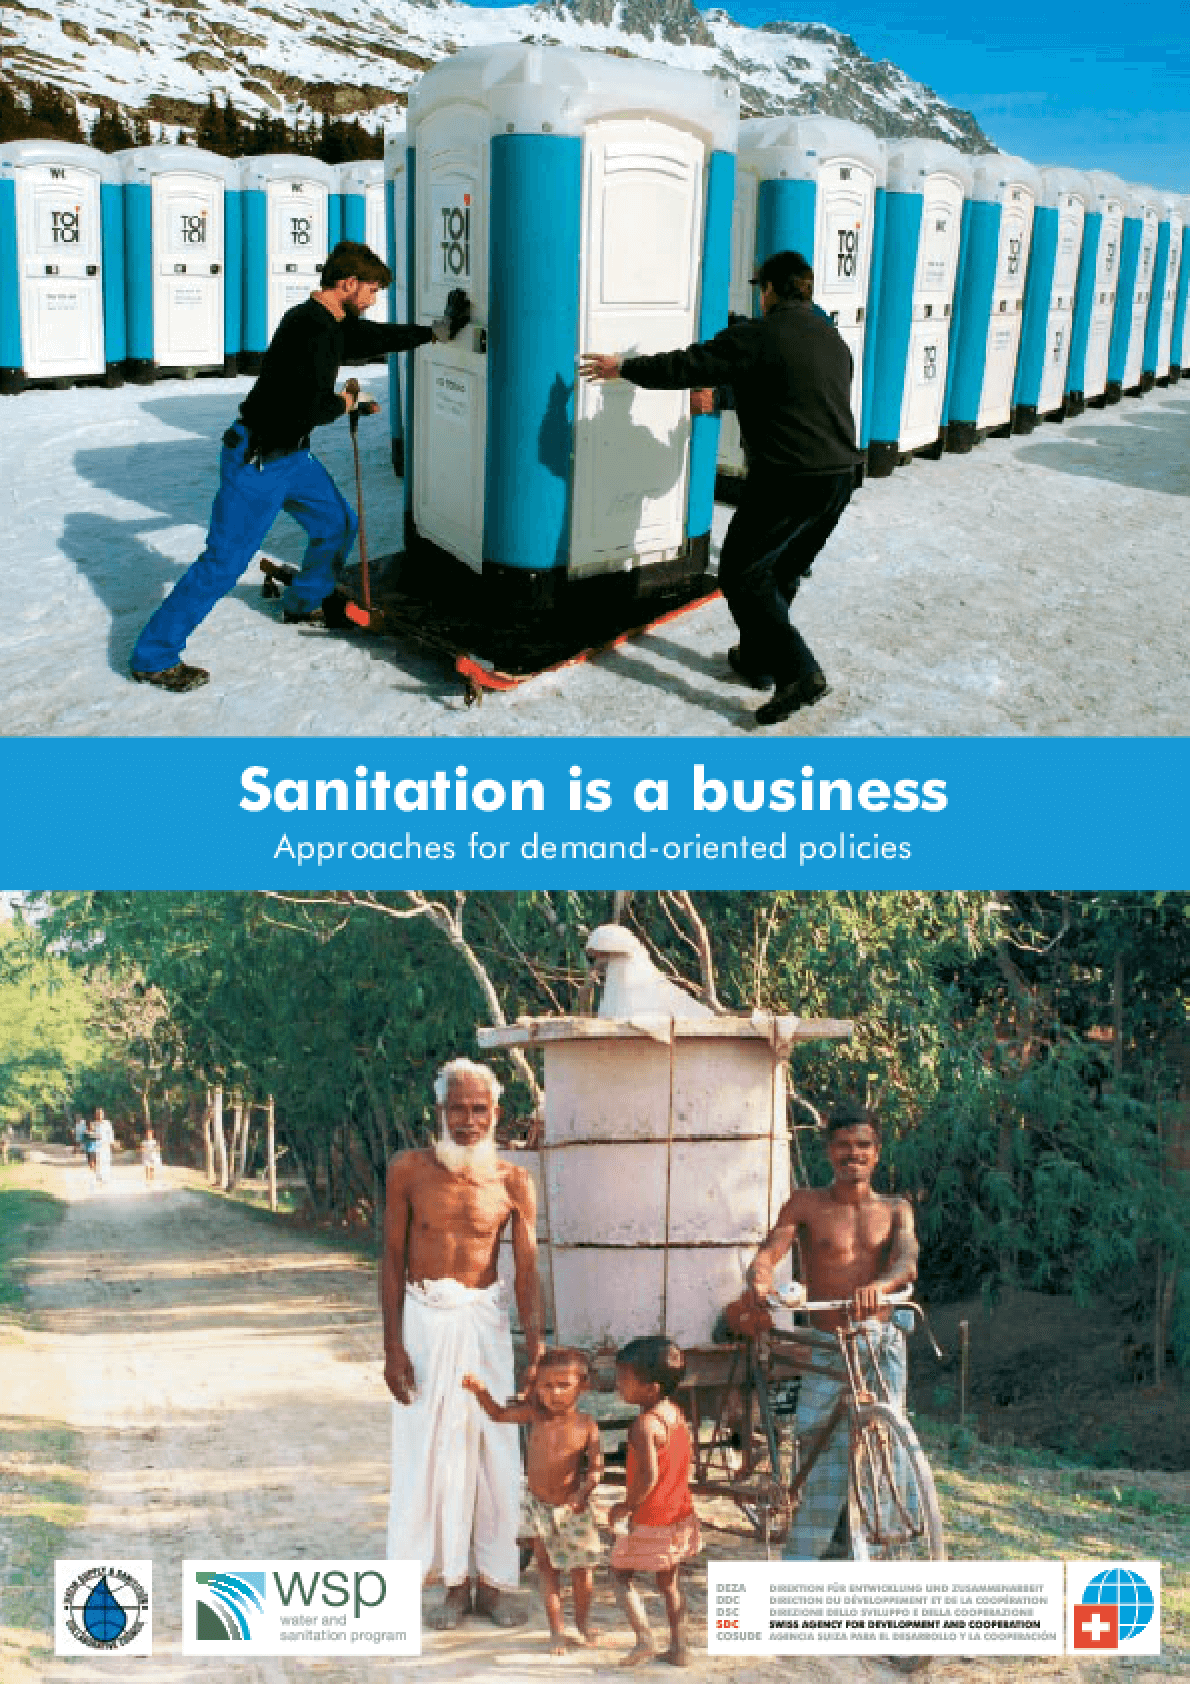 Sanitation Is a Business: Approaches for Demand-Oriented Policies